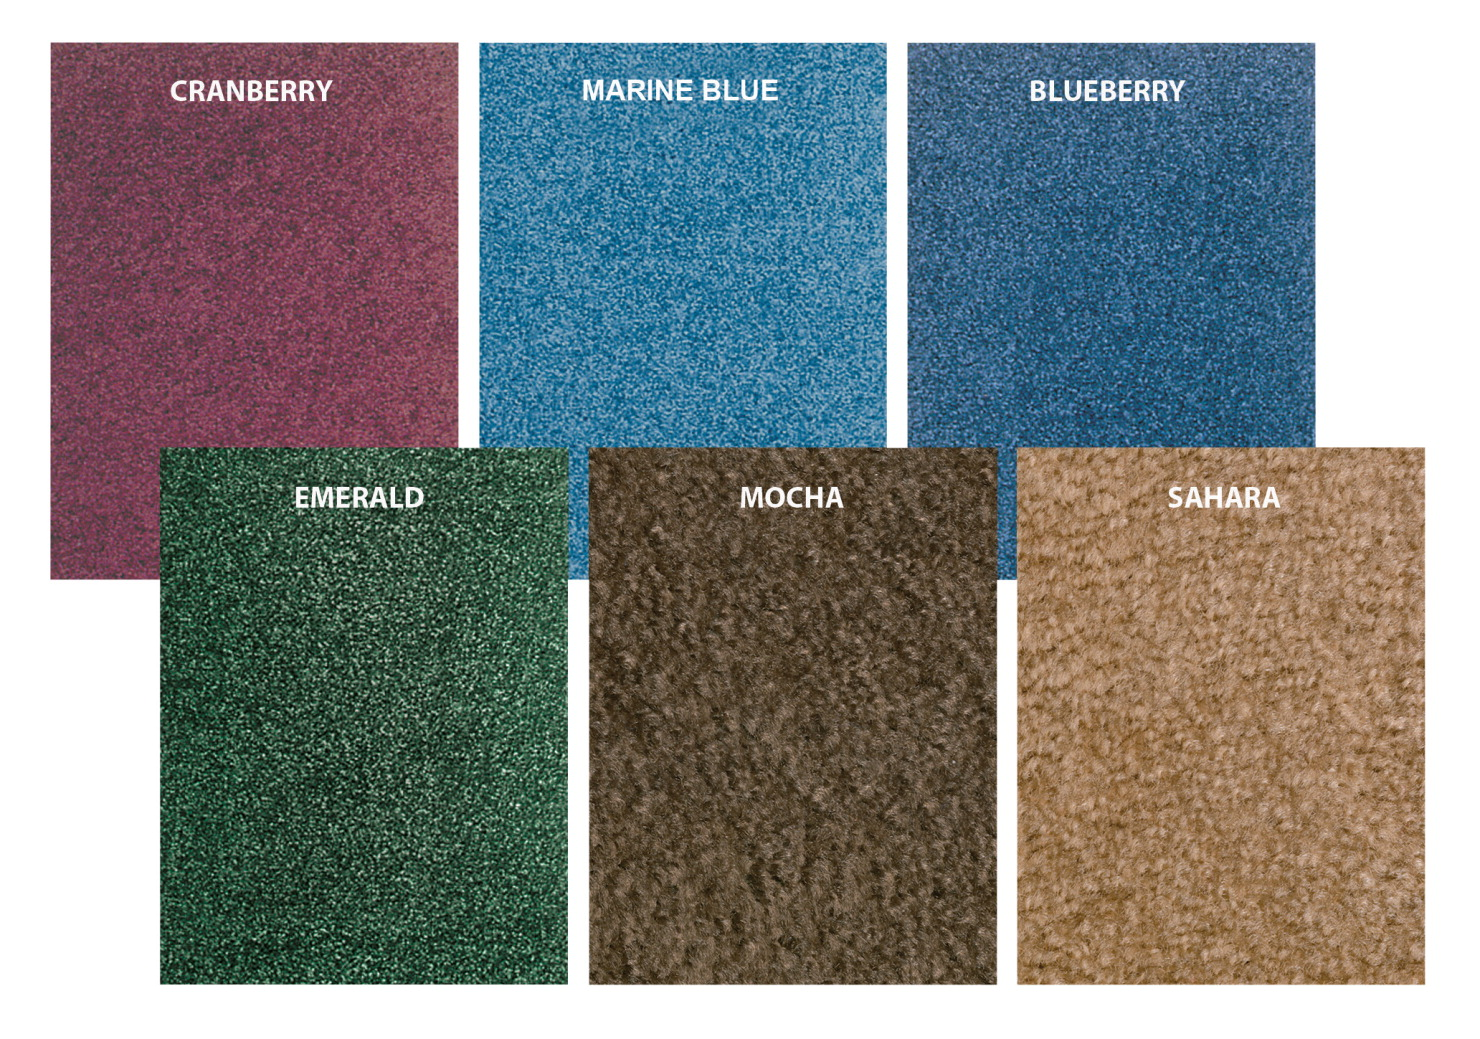 Carpets For Kids Mount St. Helens Solid Color Carpet, 8 Feet 3 Inches x 11 Feet 8 Inches, Oval, Various Options